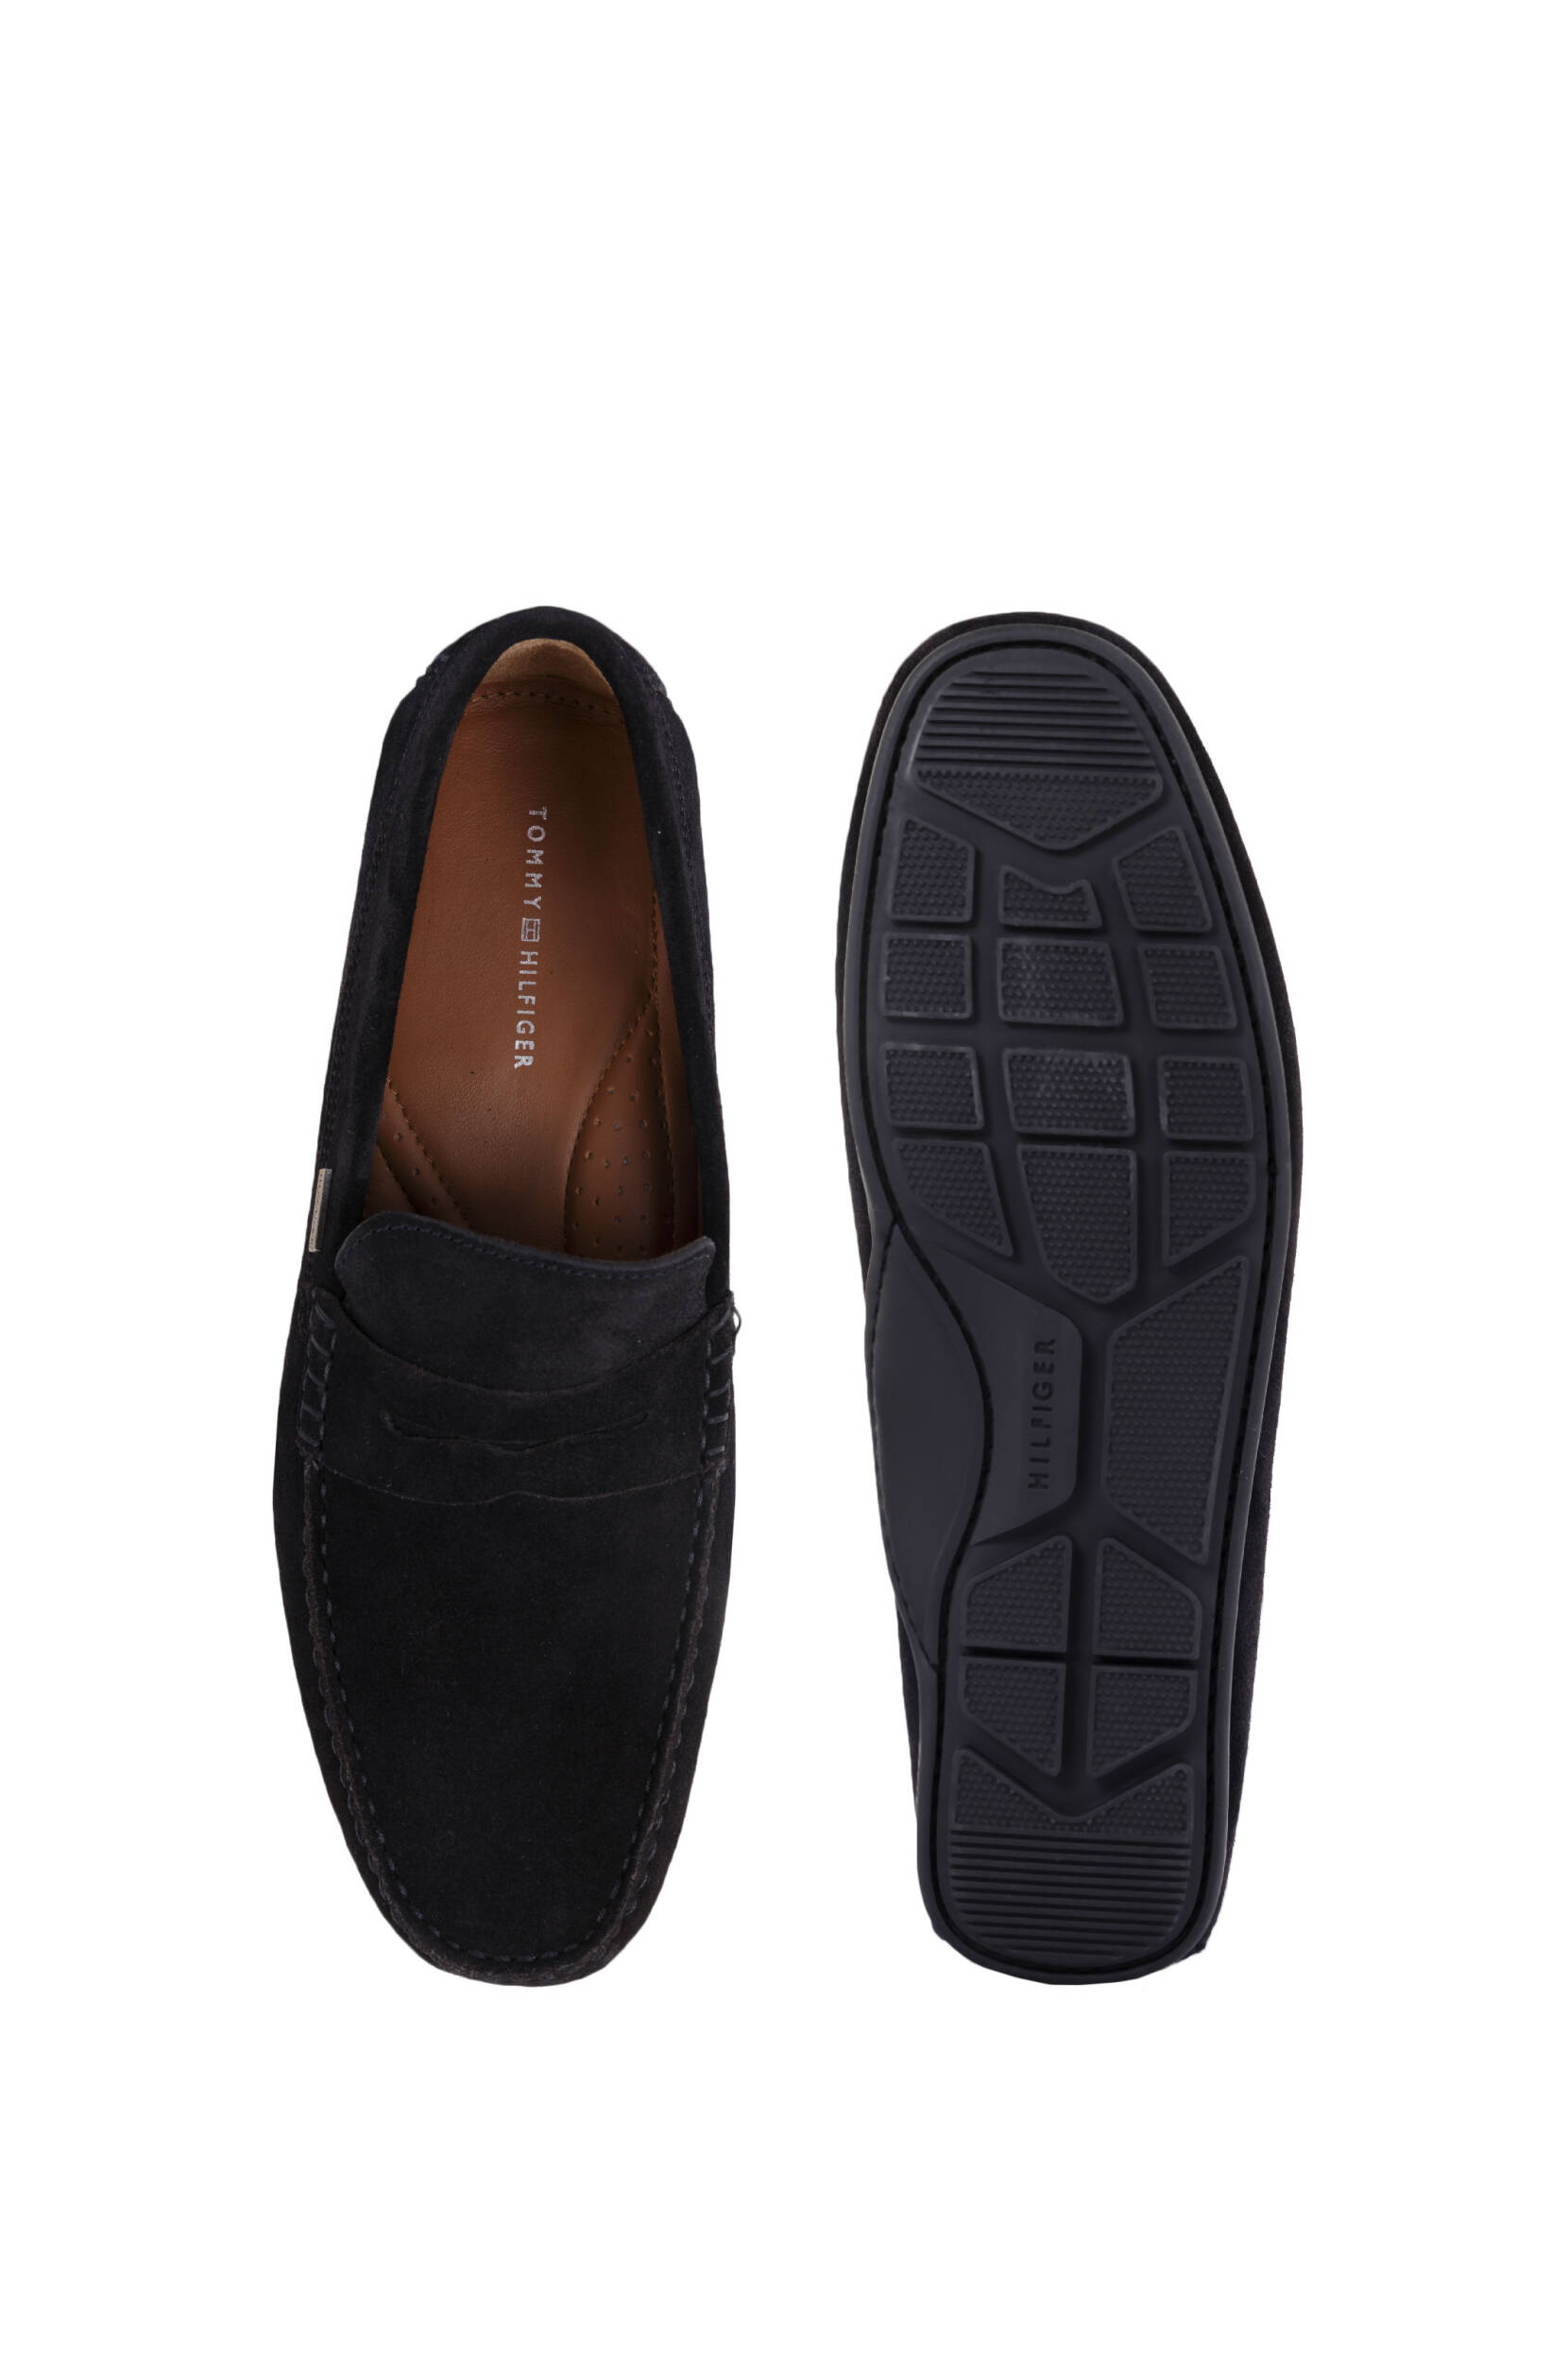 Loafers Loafers Tommy Loafers Hilfiger Hilfiger Hilfiger Fm0fm01168 Classi Fm0fm01168 Fm0fm01168 Tommy Tommy Classi j34L5AR